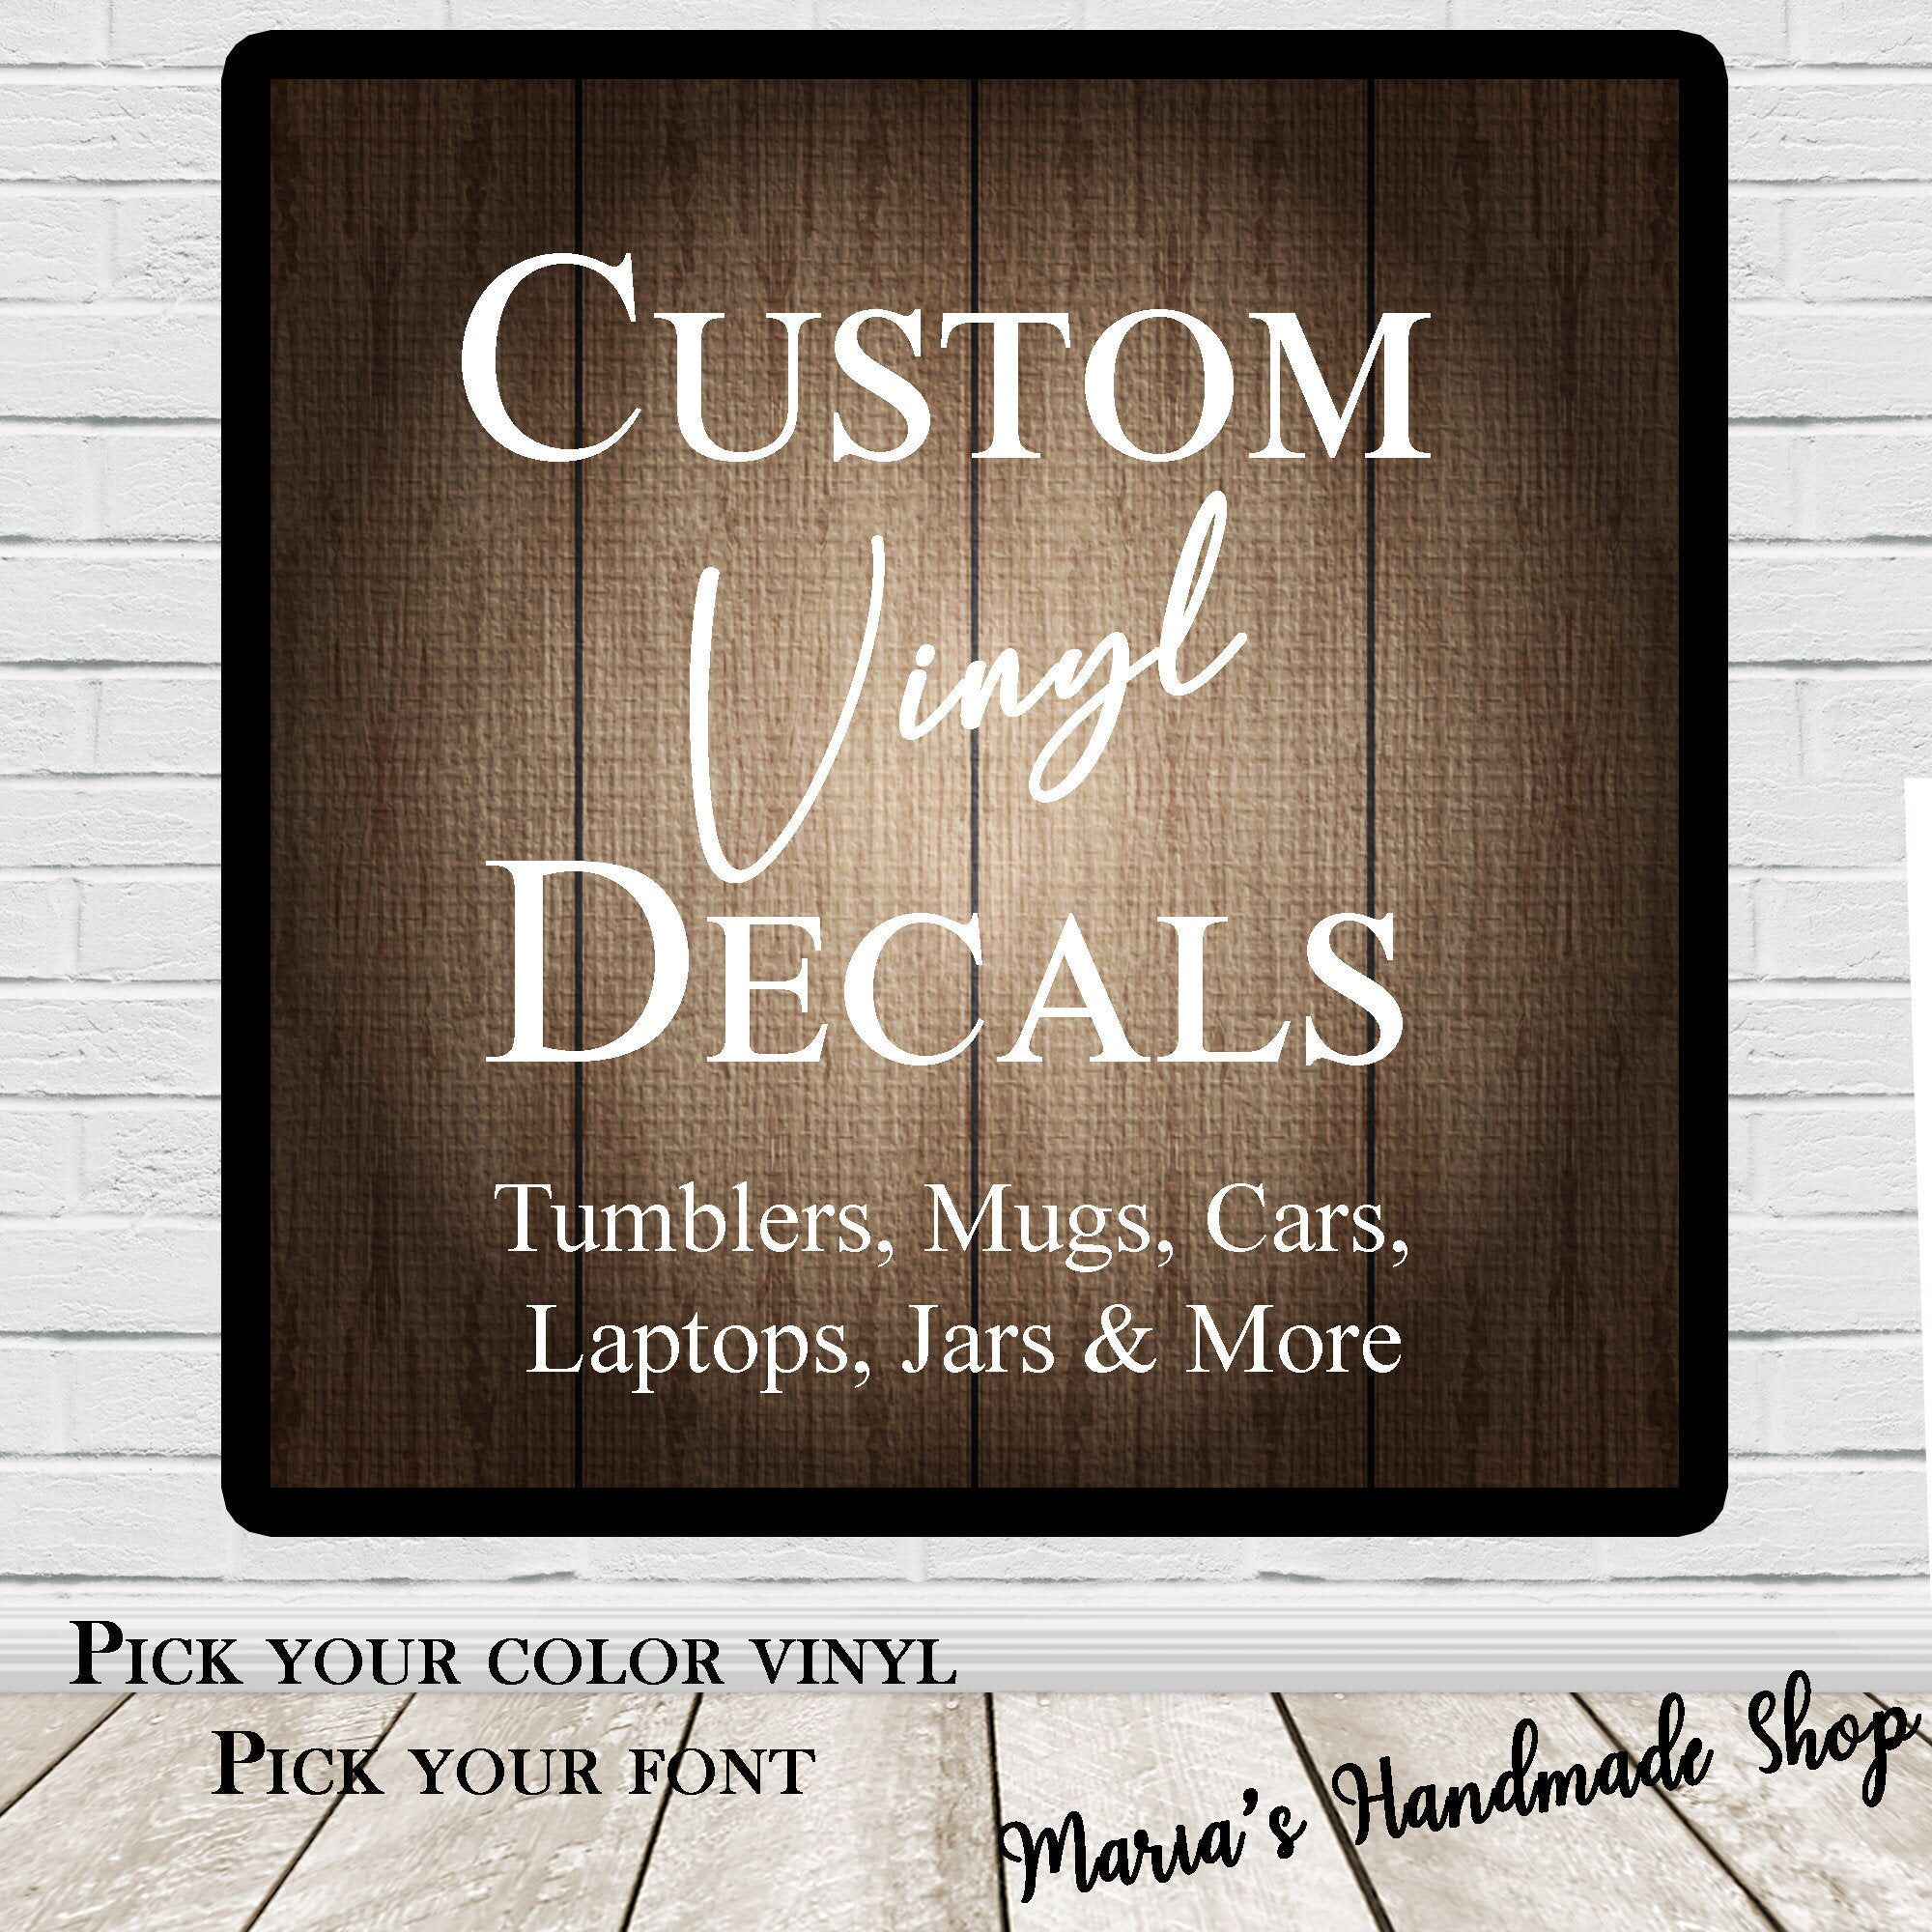 Custom Vinyl Decal Personalized Vinyl Decal Name Decal Use On Car Laptops Tumblers Signs Cups Mugs Containers In 2020 Personalized Vinyl Decal Custom Vinyl Decal Personalized Decals